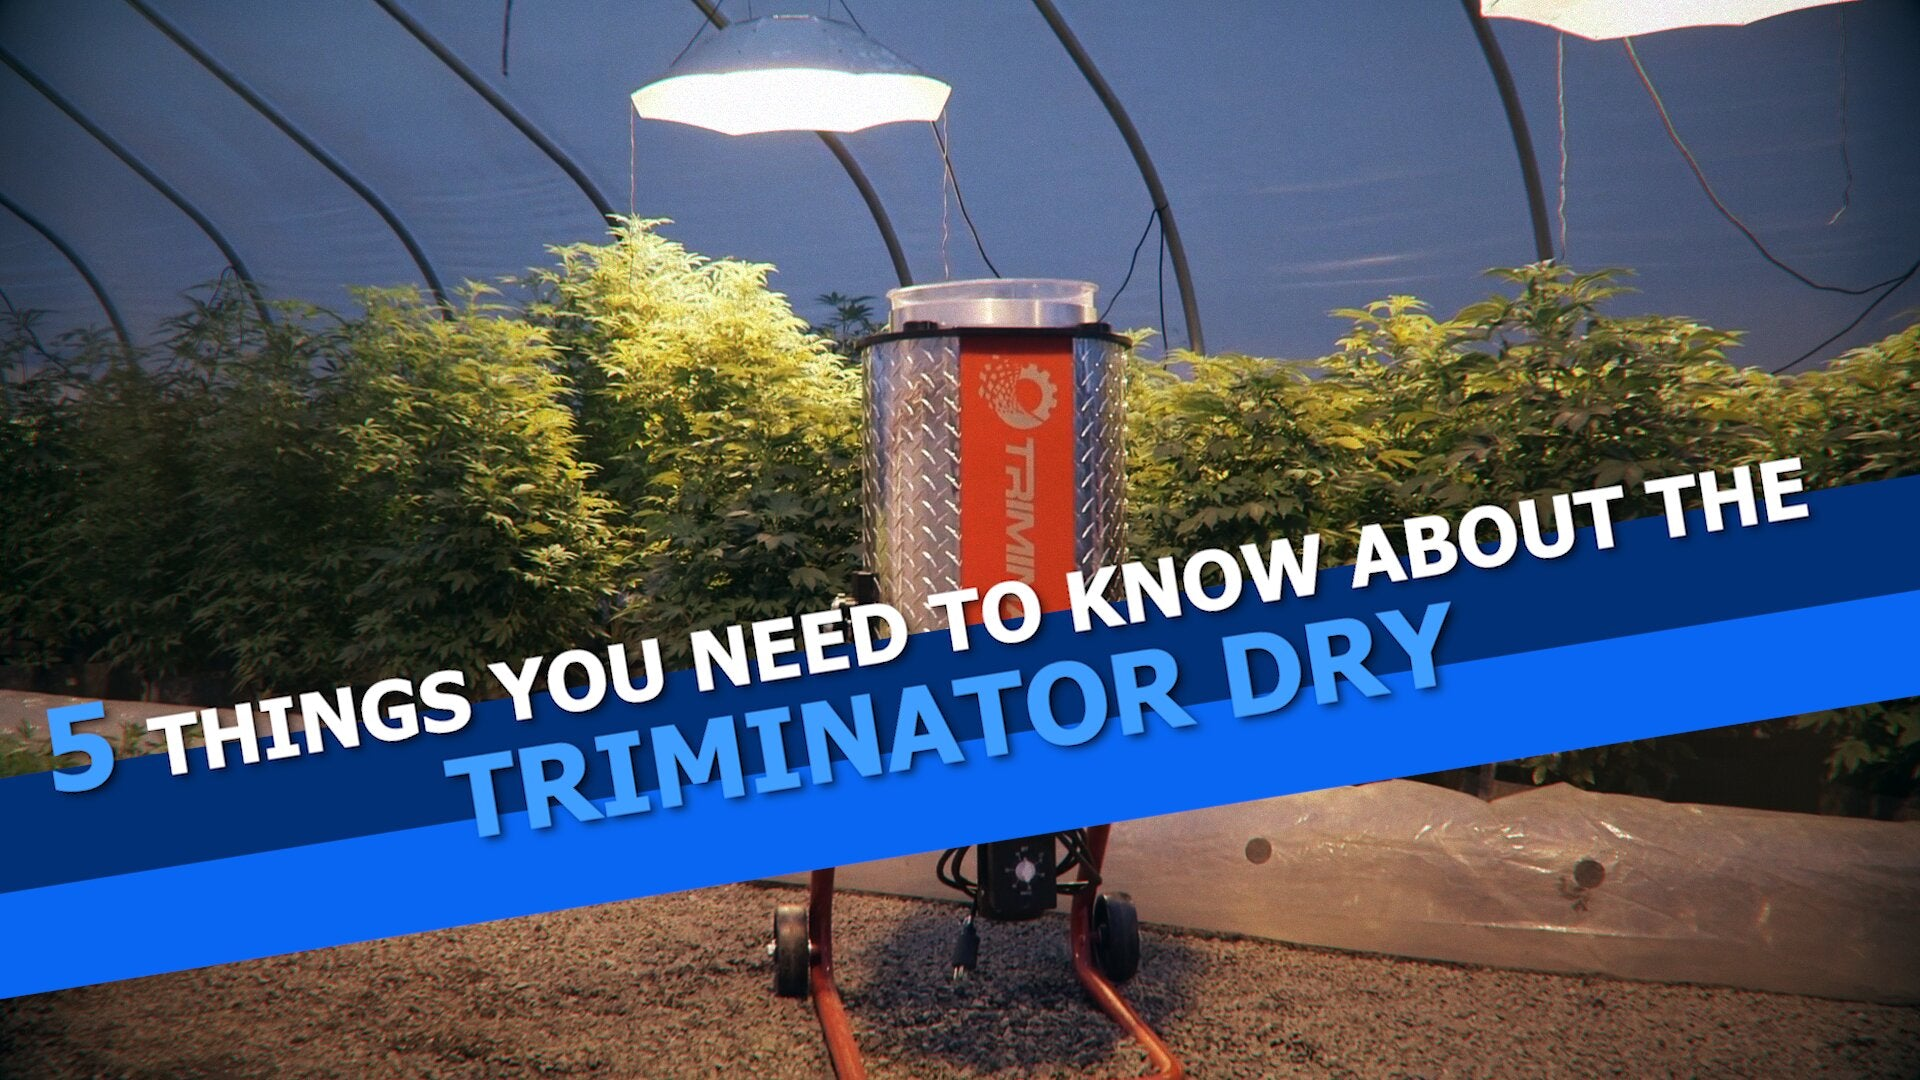 5 Things You Need To Know About The Triminator Dry Automatic Dry Bud Trimmer